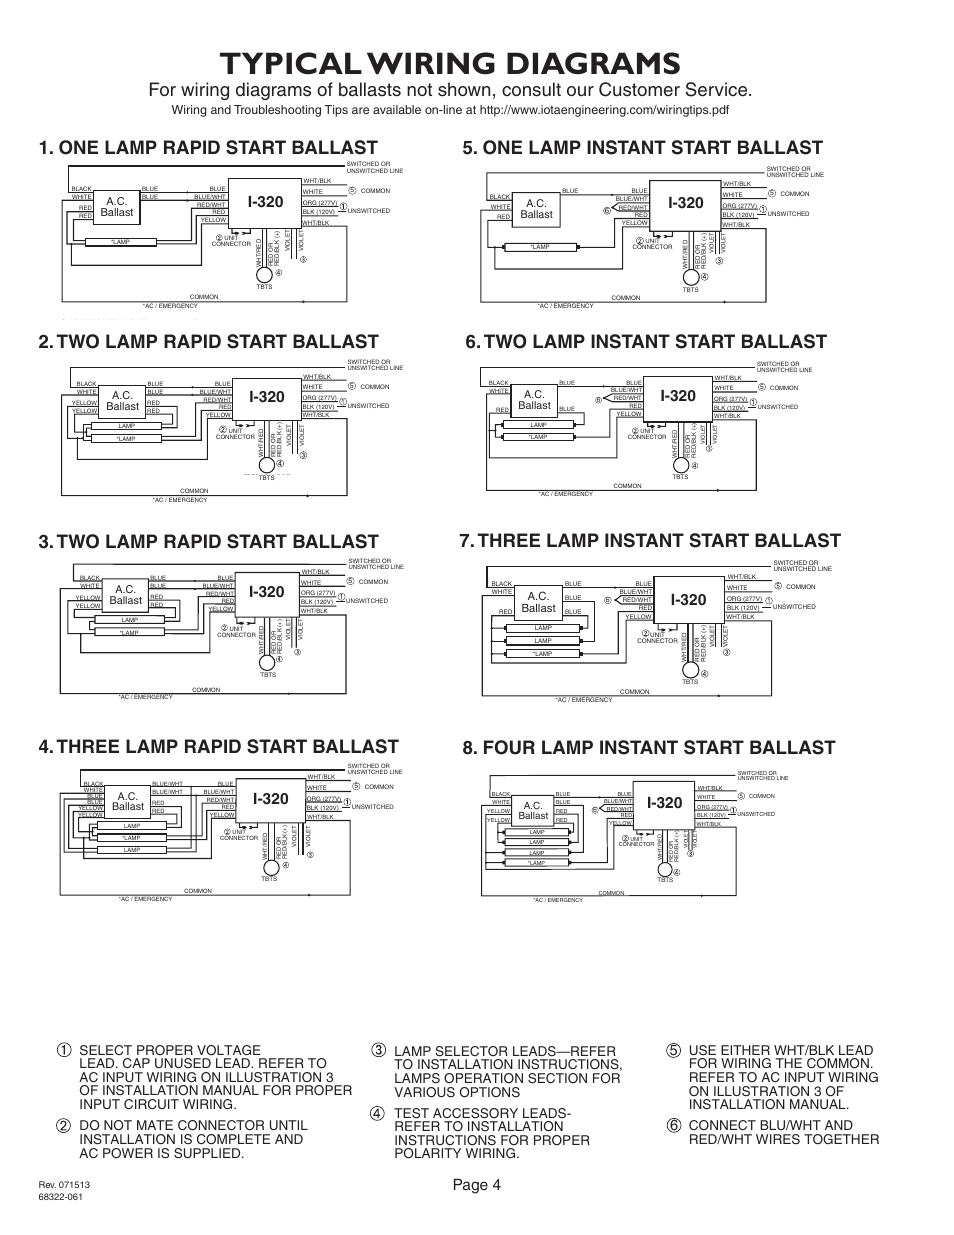 iota i 320 page4 typical wiring diagrams, page 4, i 320 iota i 320 user manual iota i 320 wiring diagram at fashall.co